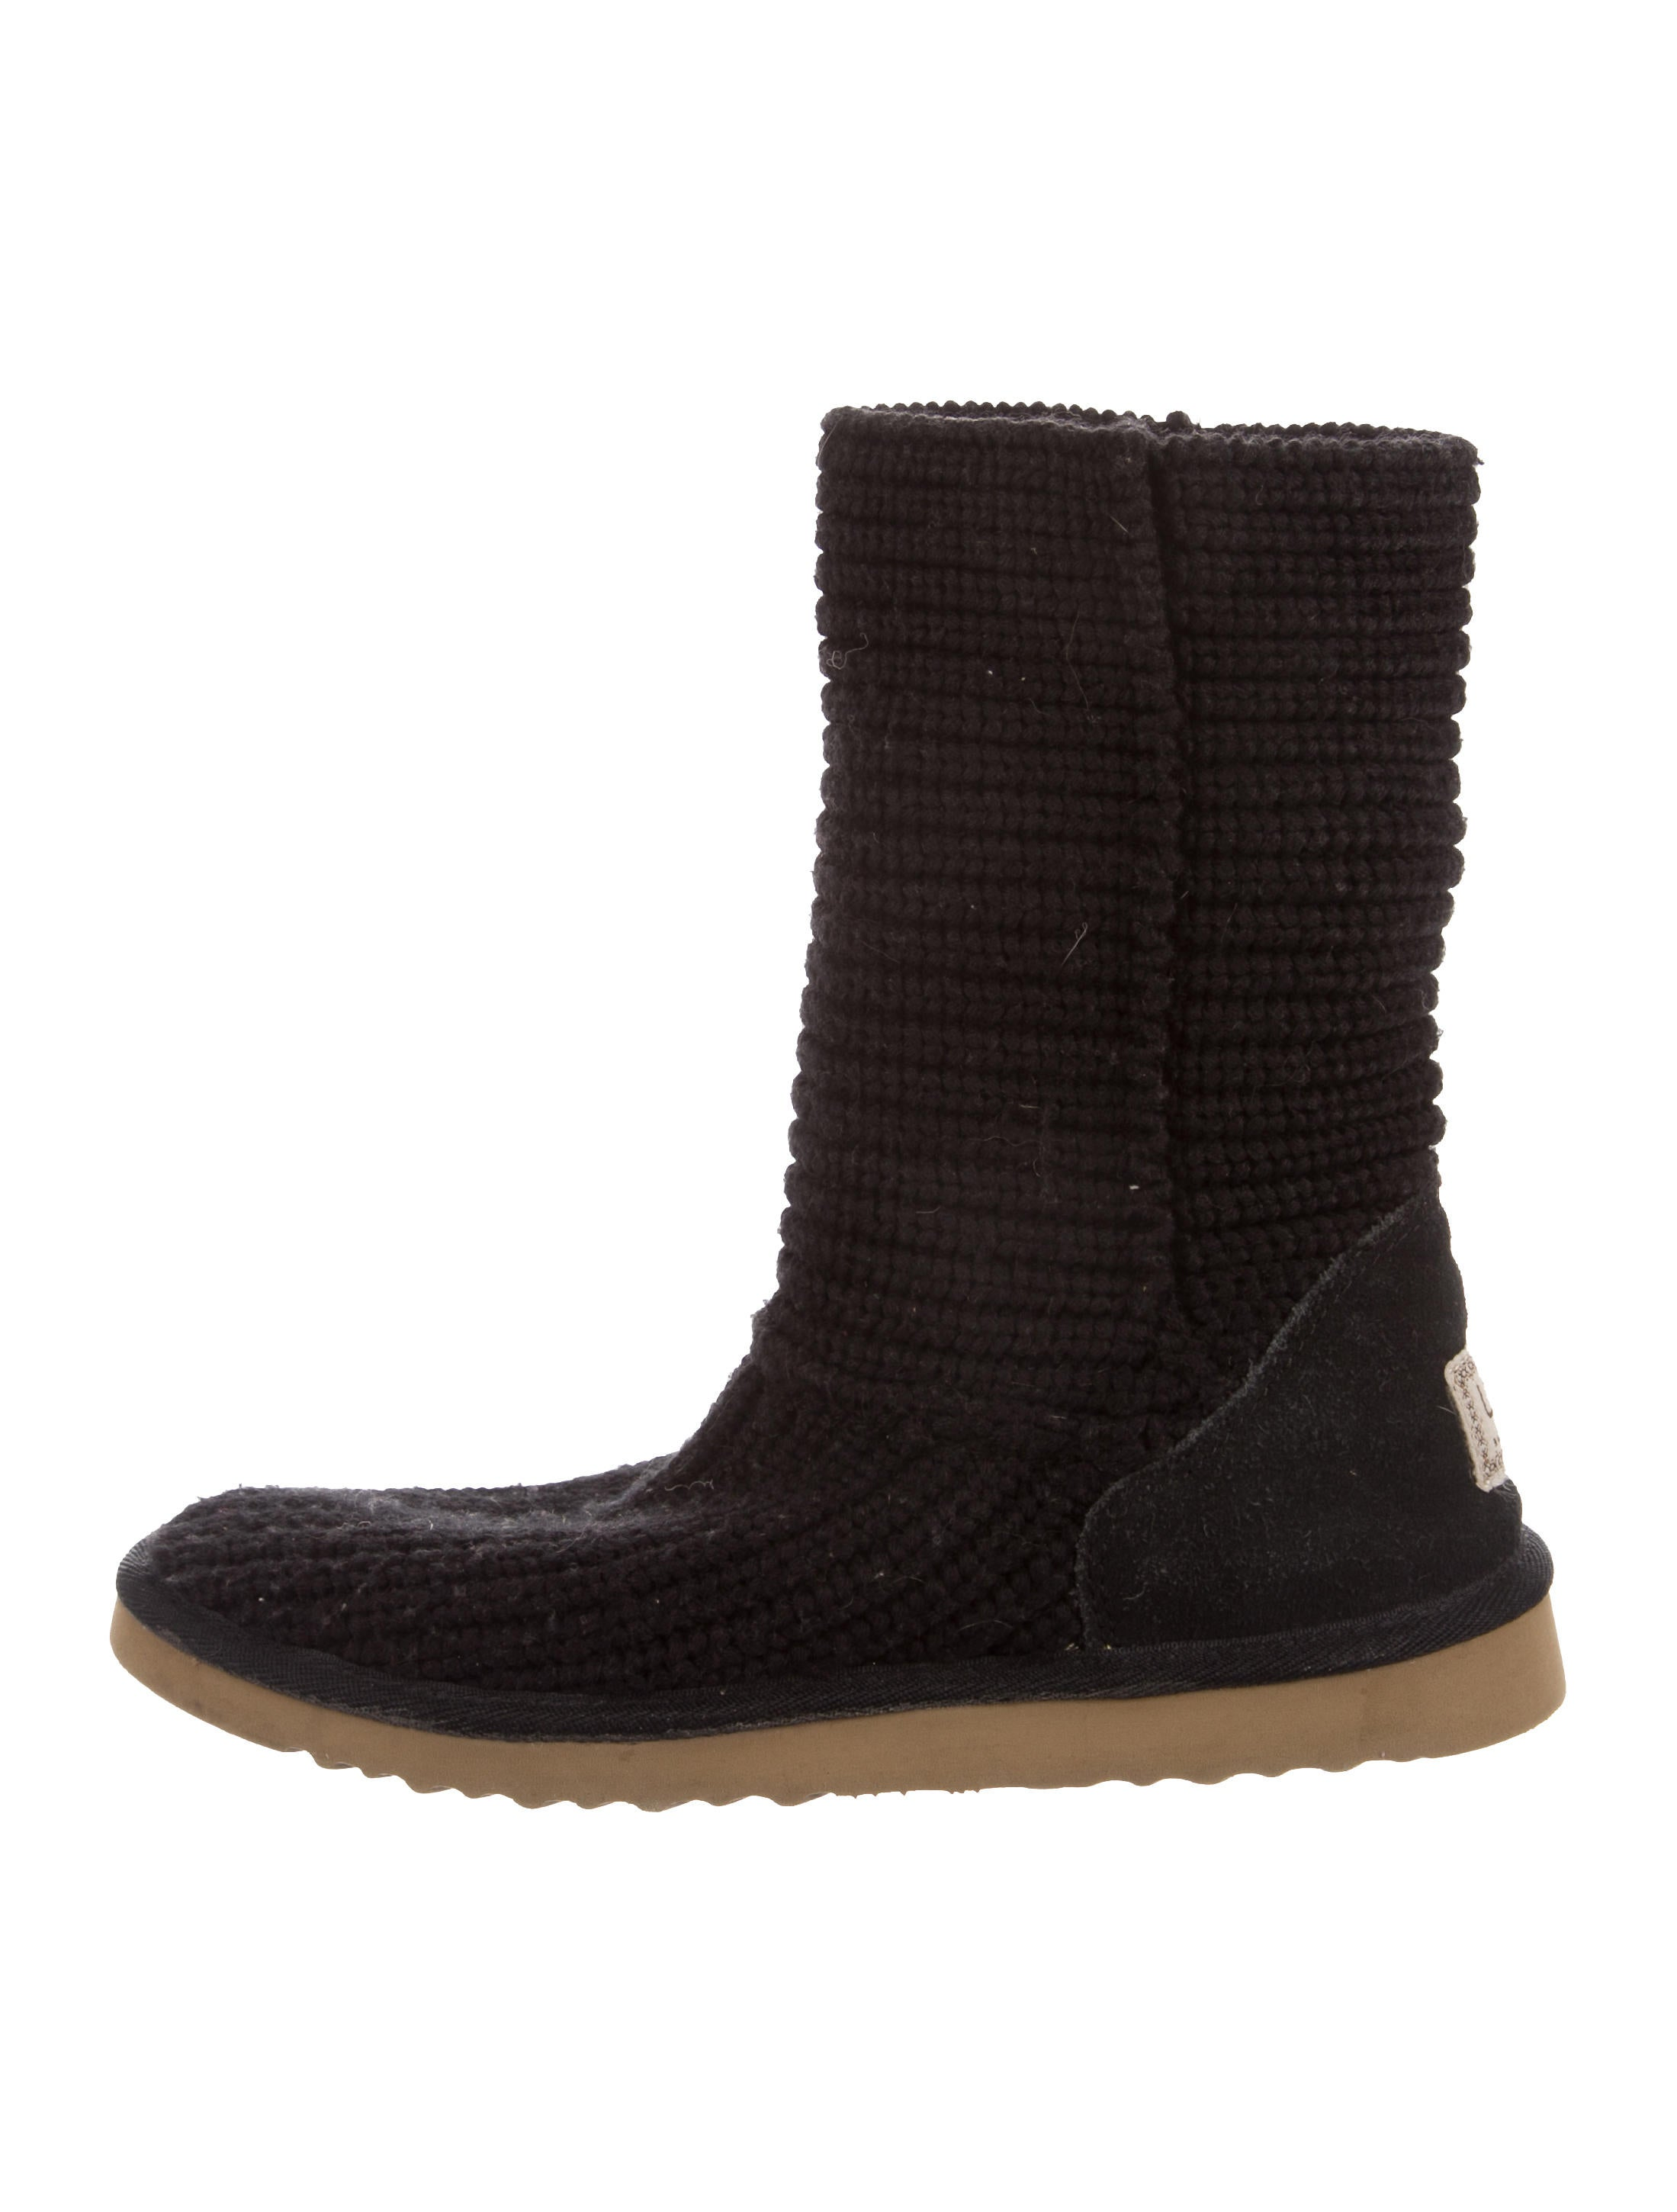 UGG Australia Knit Round-Toe Mid-Calf Boots store sale free shipping new Va2X3zG